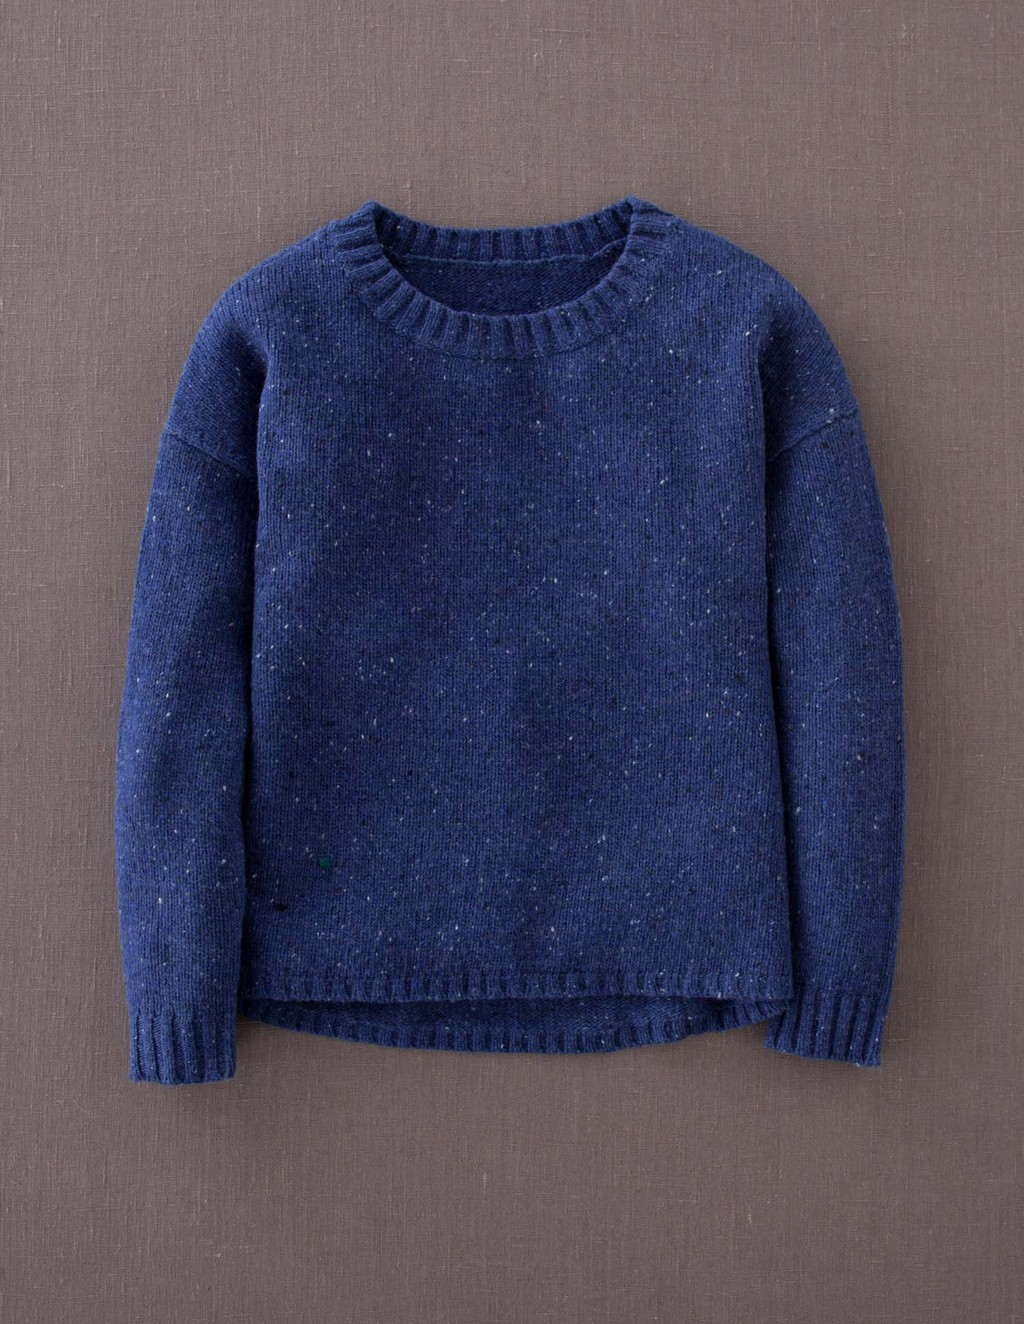 Skye Jumper - pattern: plain; style: standard; predominant colour: royal blue; occasions: casual; length: standard; fibres: wool - mix; fit: standard fit; neckline: crew; sleeve length: long sleeve; sleeve style: standard; texture group: knits/crochet; pattern type: knitted - fine stitch; season: a/w 2013